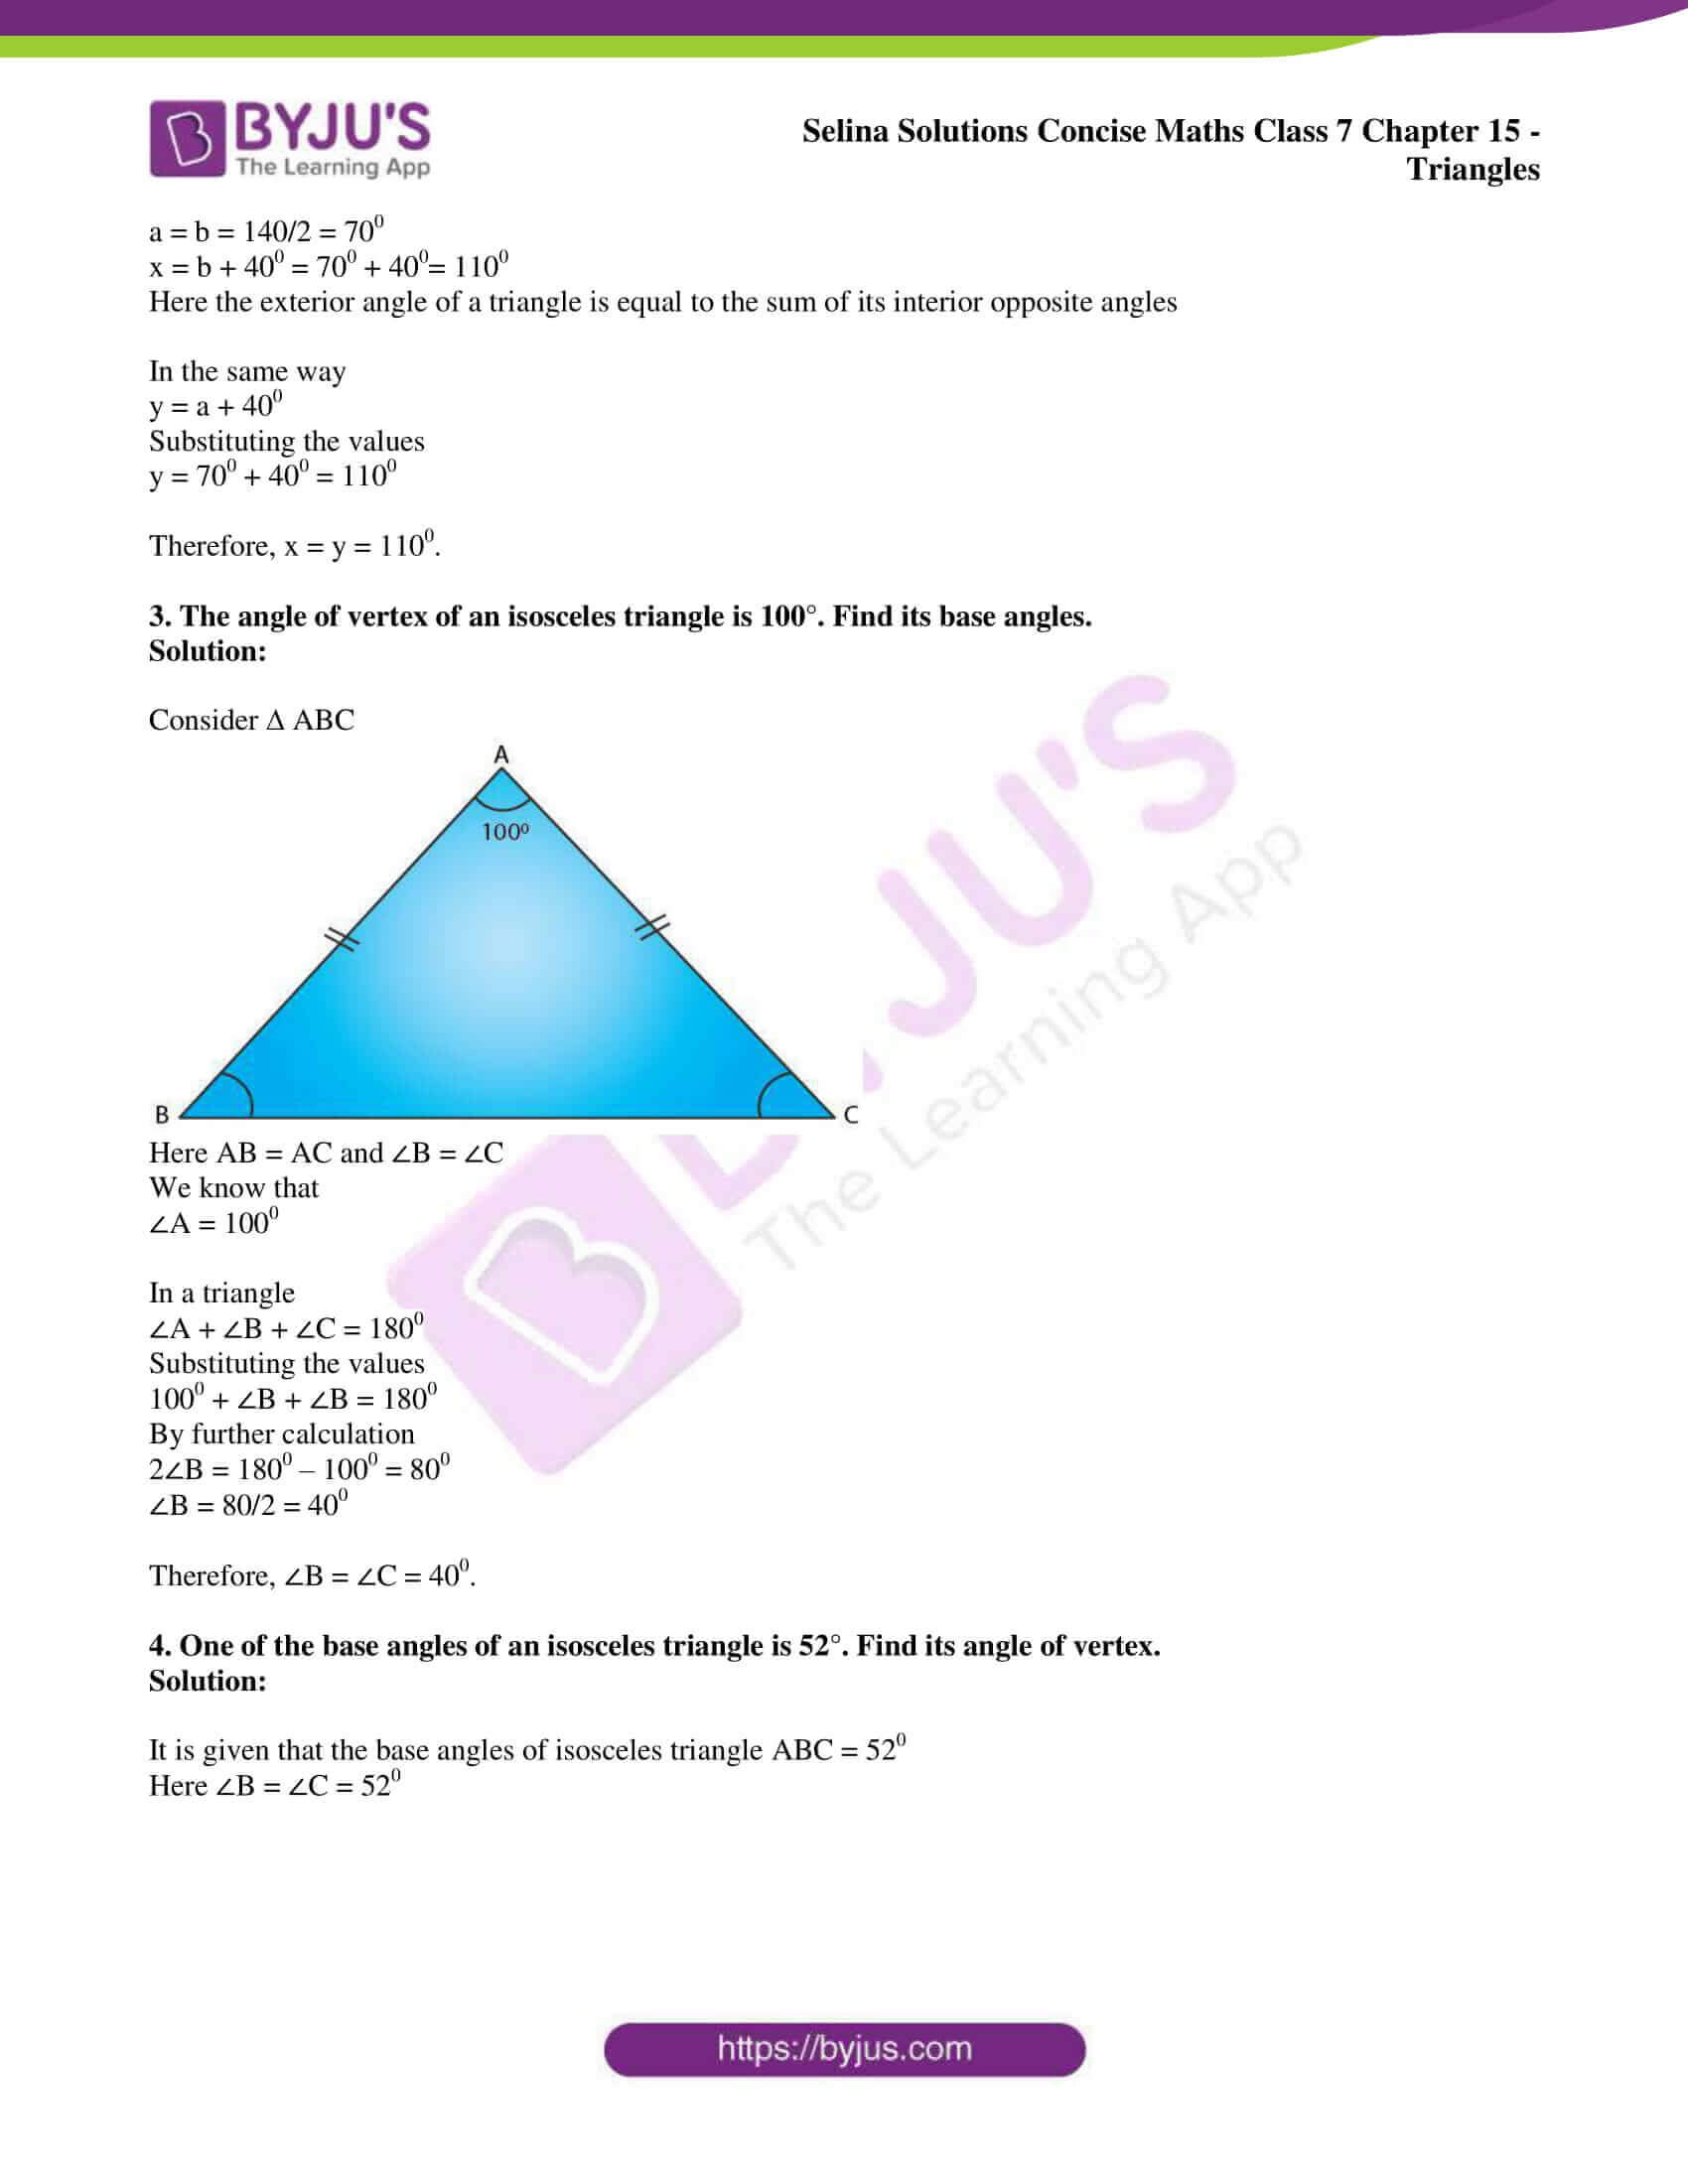 selina sol concise maths class 7 chapter 15 ex b 05